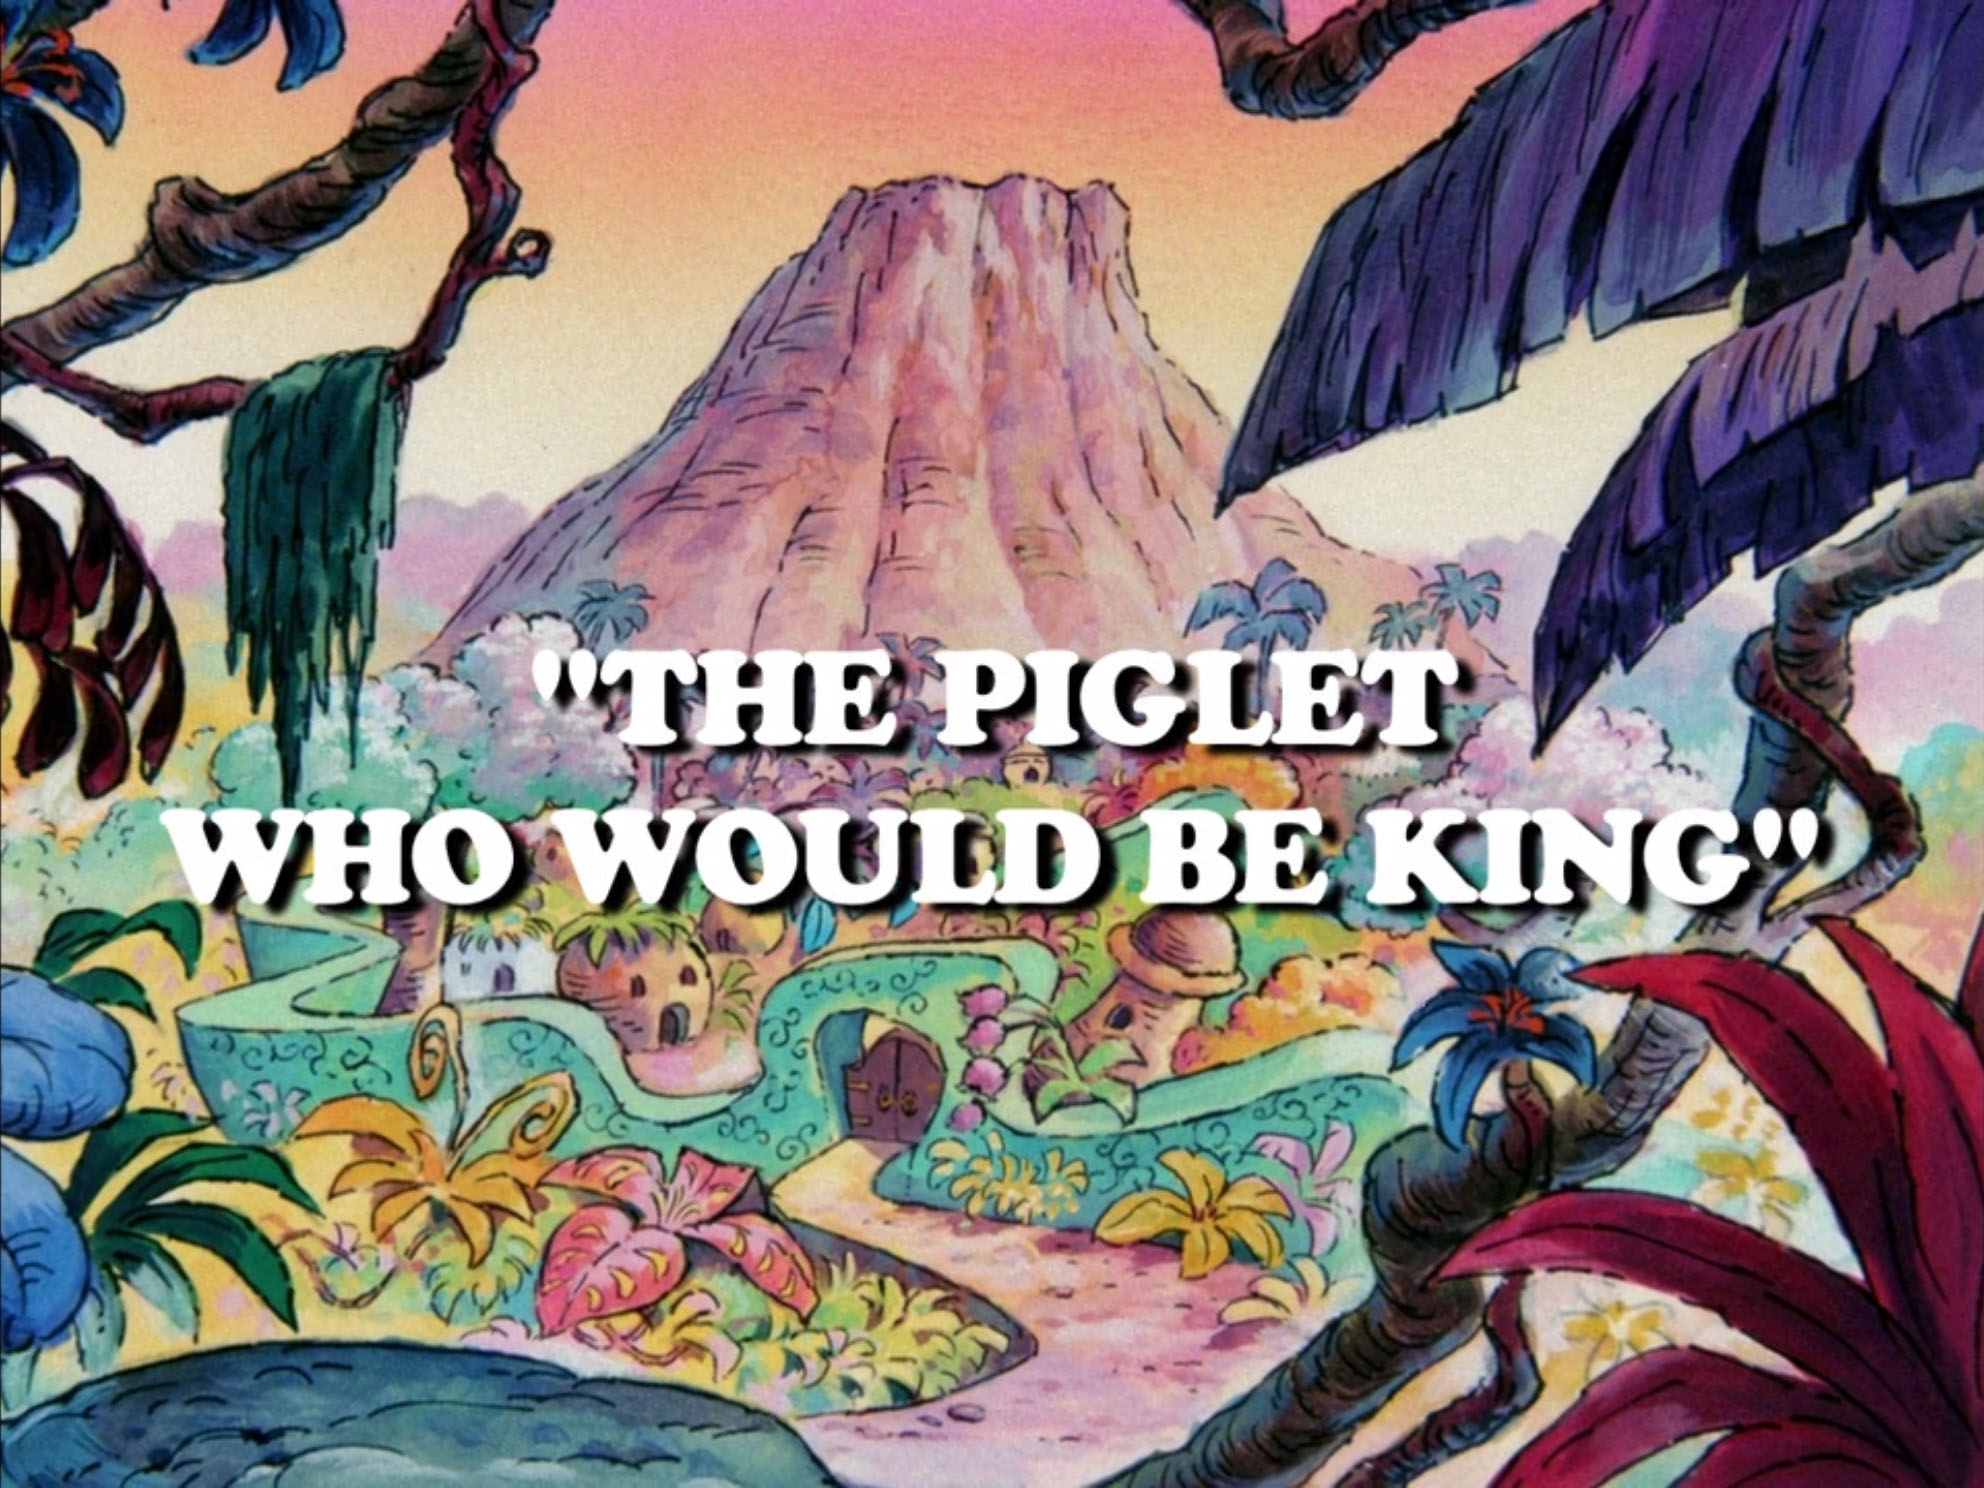 File:The Piglet Who Would Be King.jpg